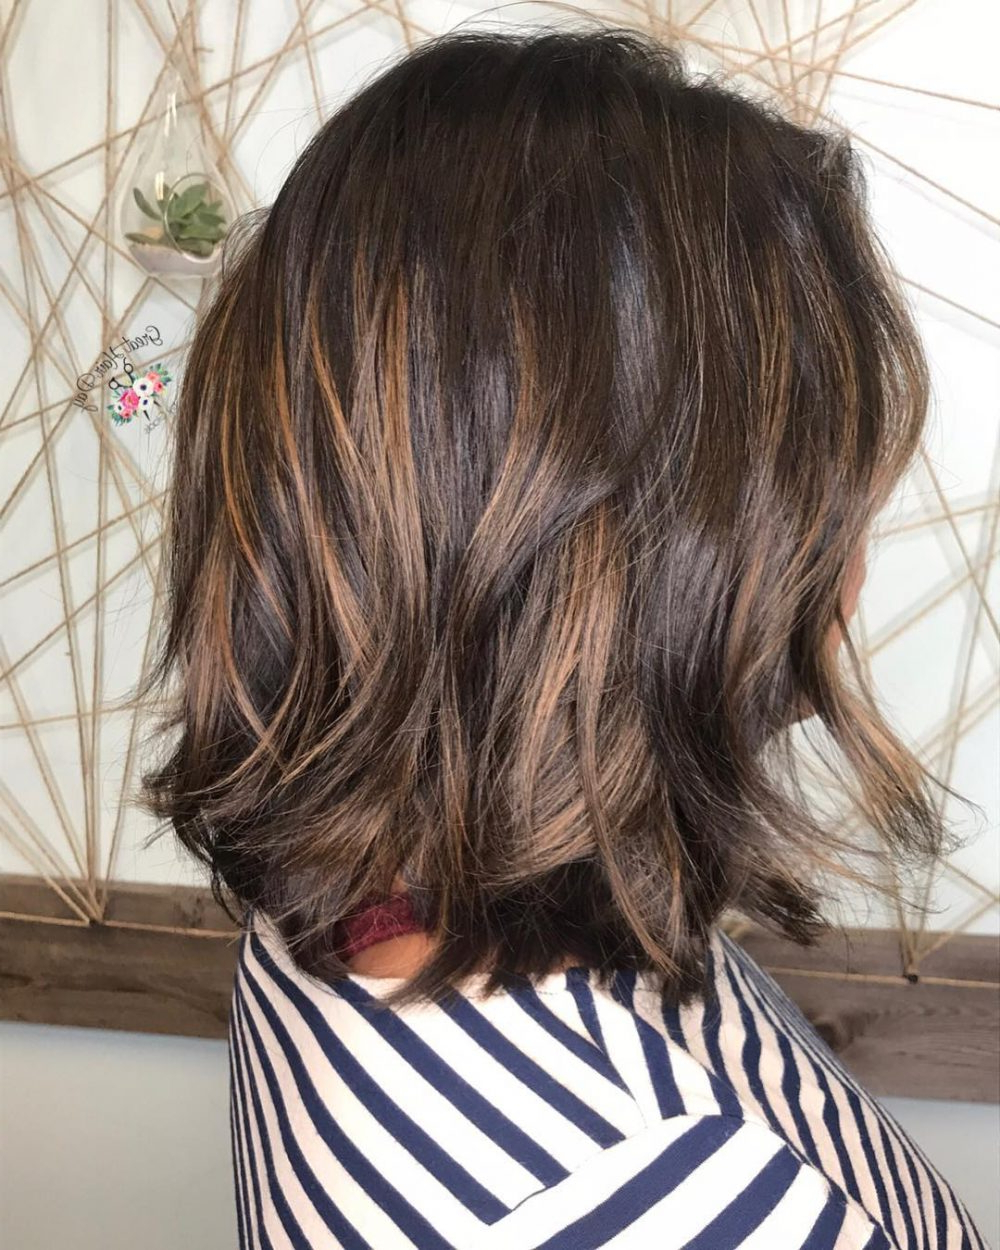 34 Sweetest Caramel Highlights On Light To Dark Brown Hair (2018) Pertaining To Layered Caramel Brown Bob Hairstyles (View 8 of 20)